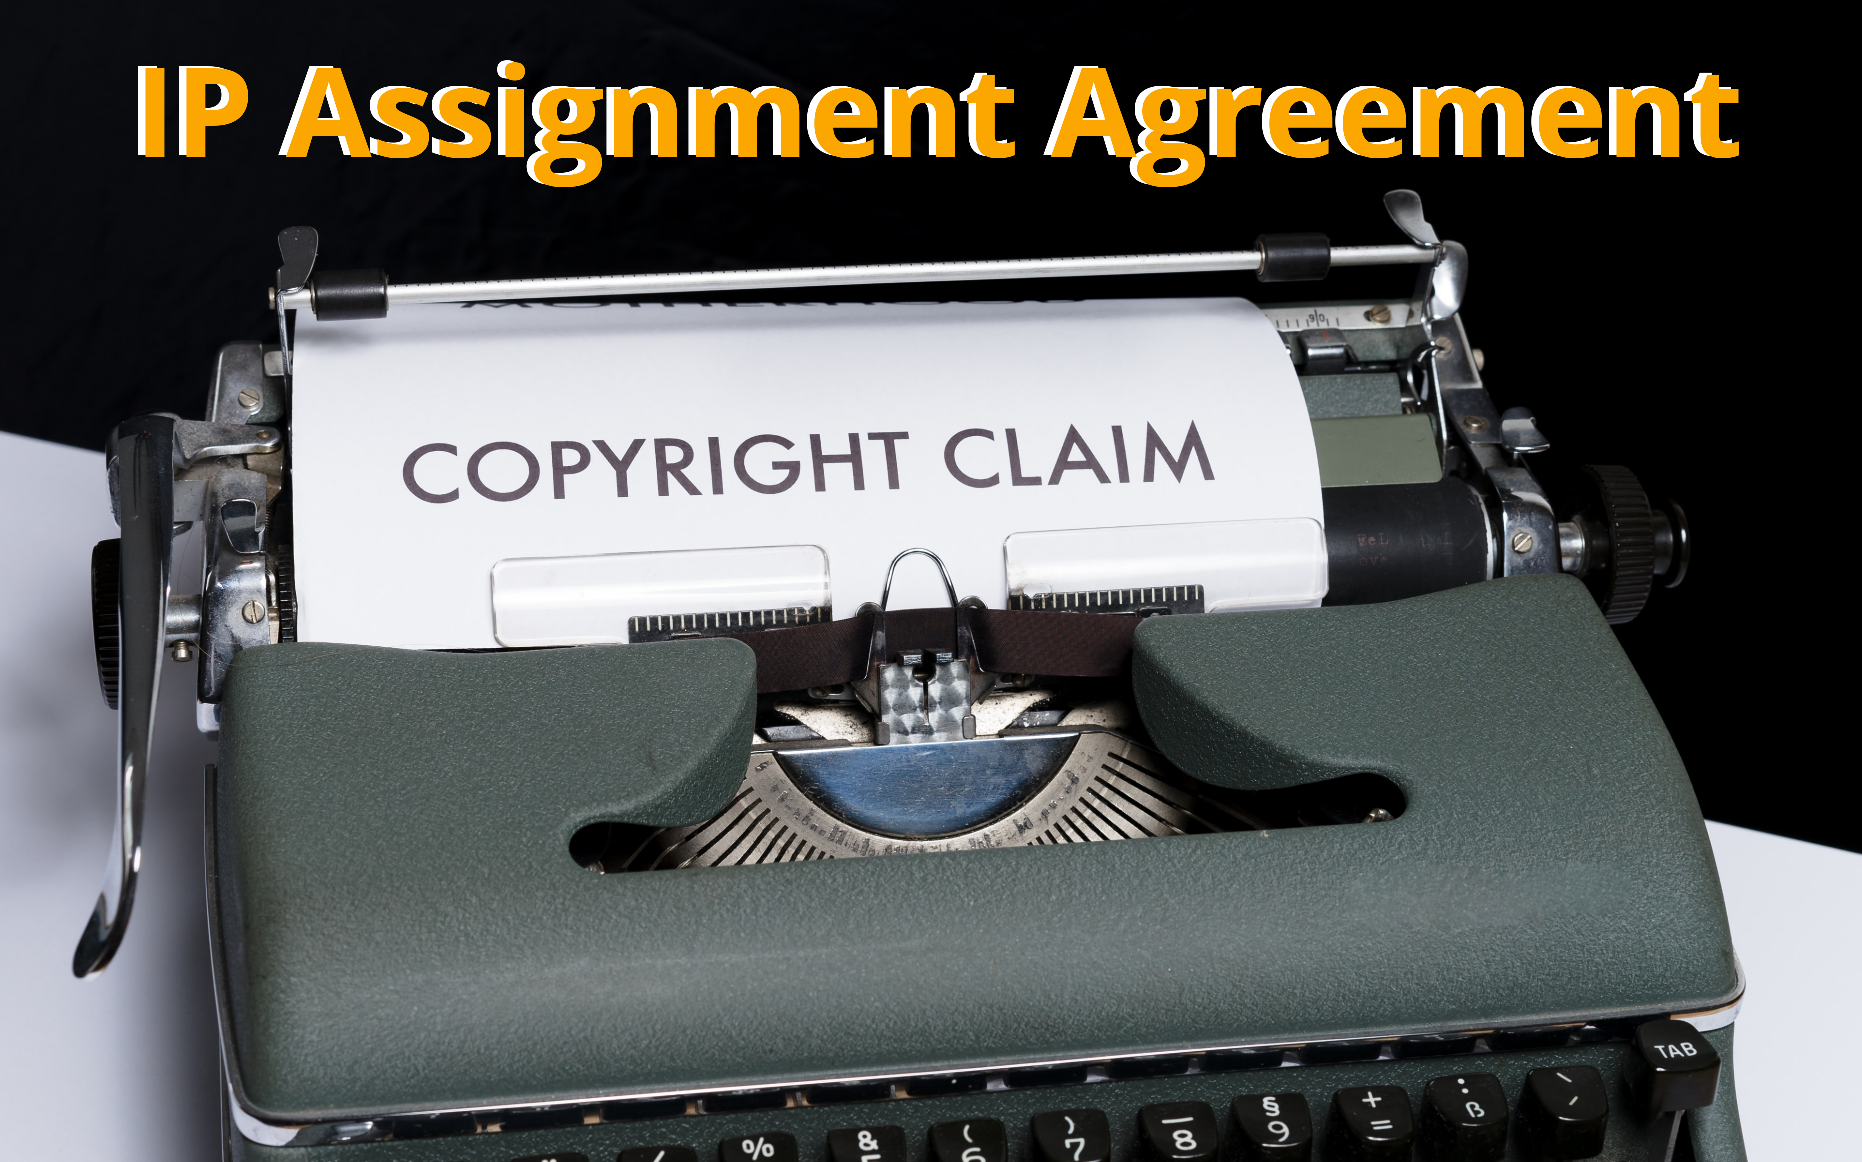 ip assignment agreement, Intellectual property assignment agreement pdf, ip assignment agreement template, Founder ip assignment agreement, ip assignment agreement india